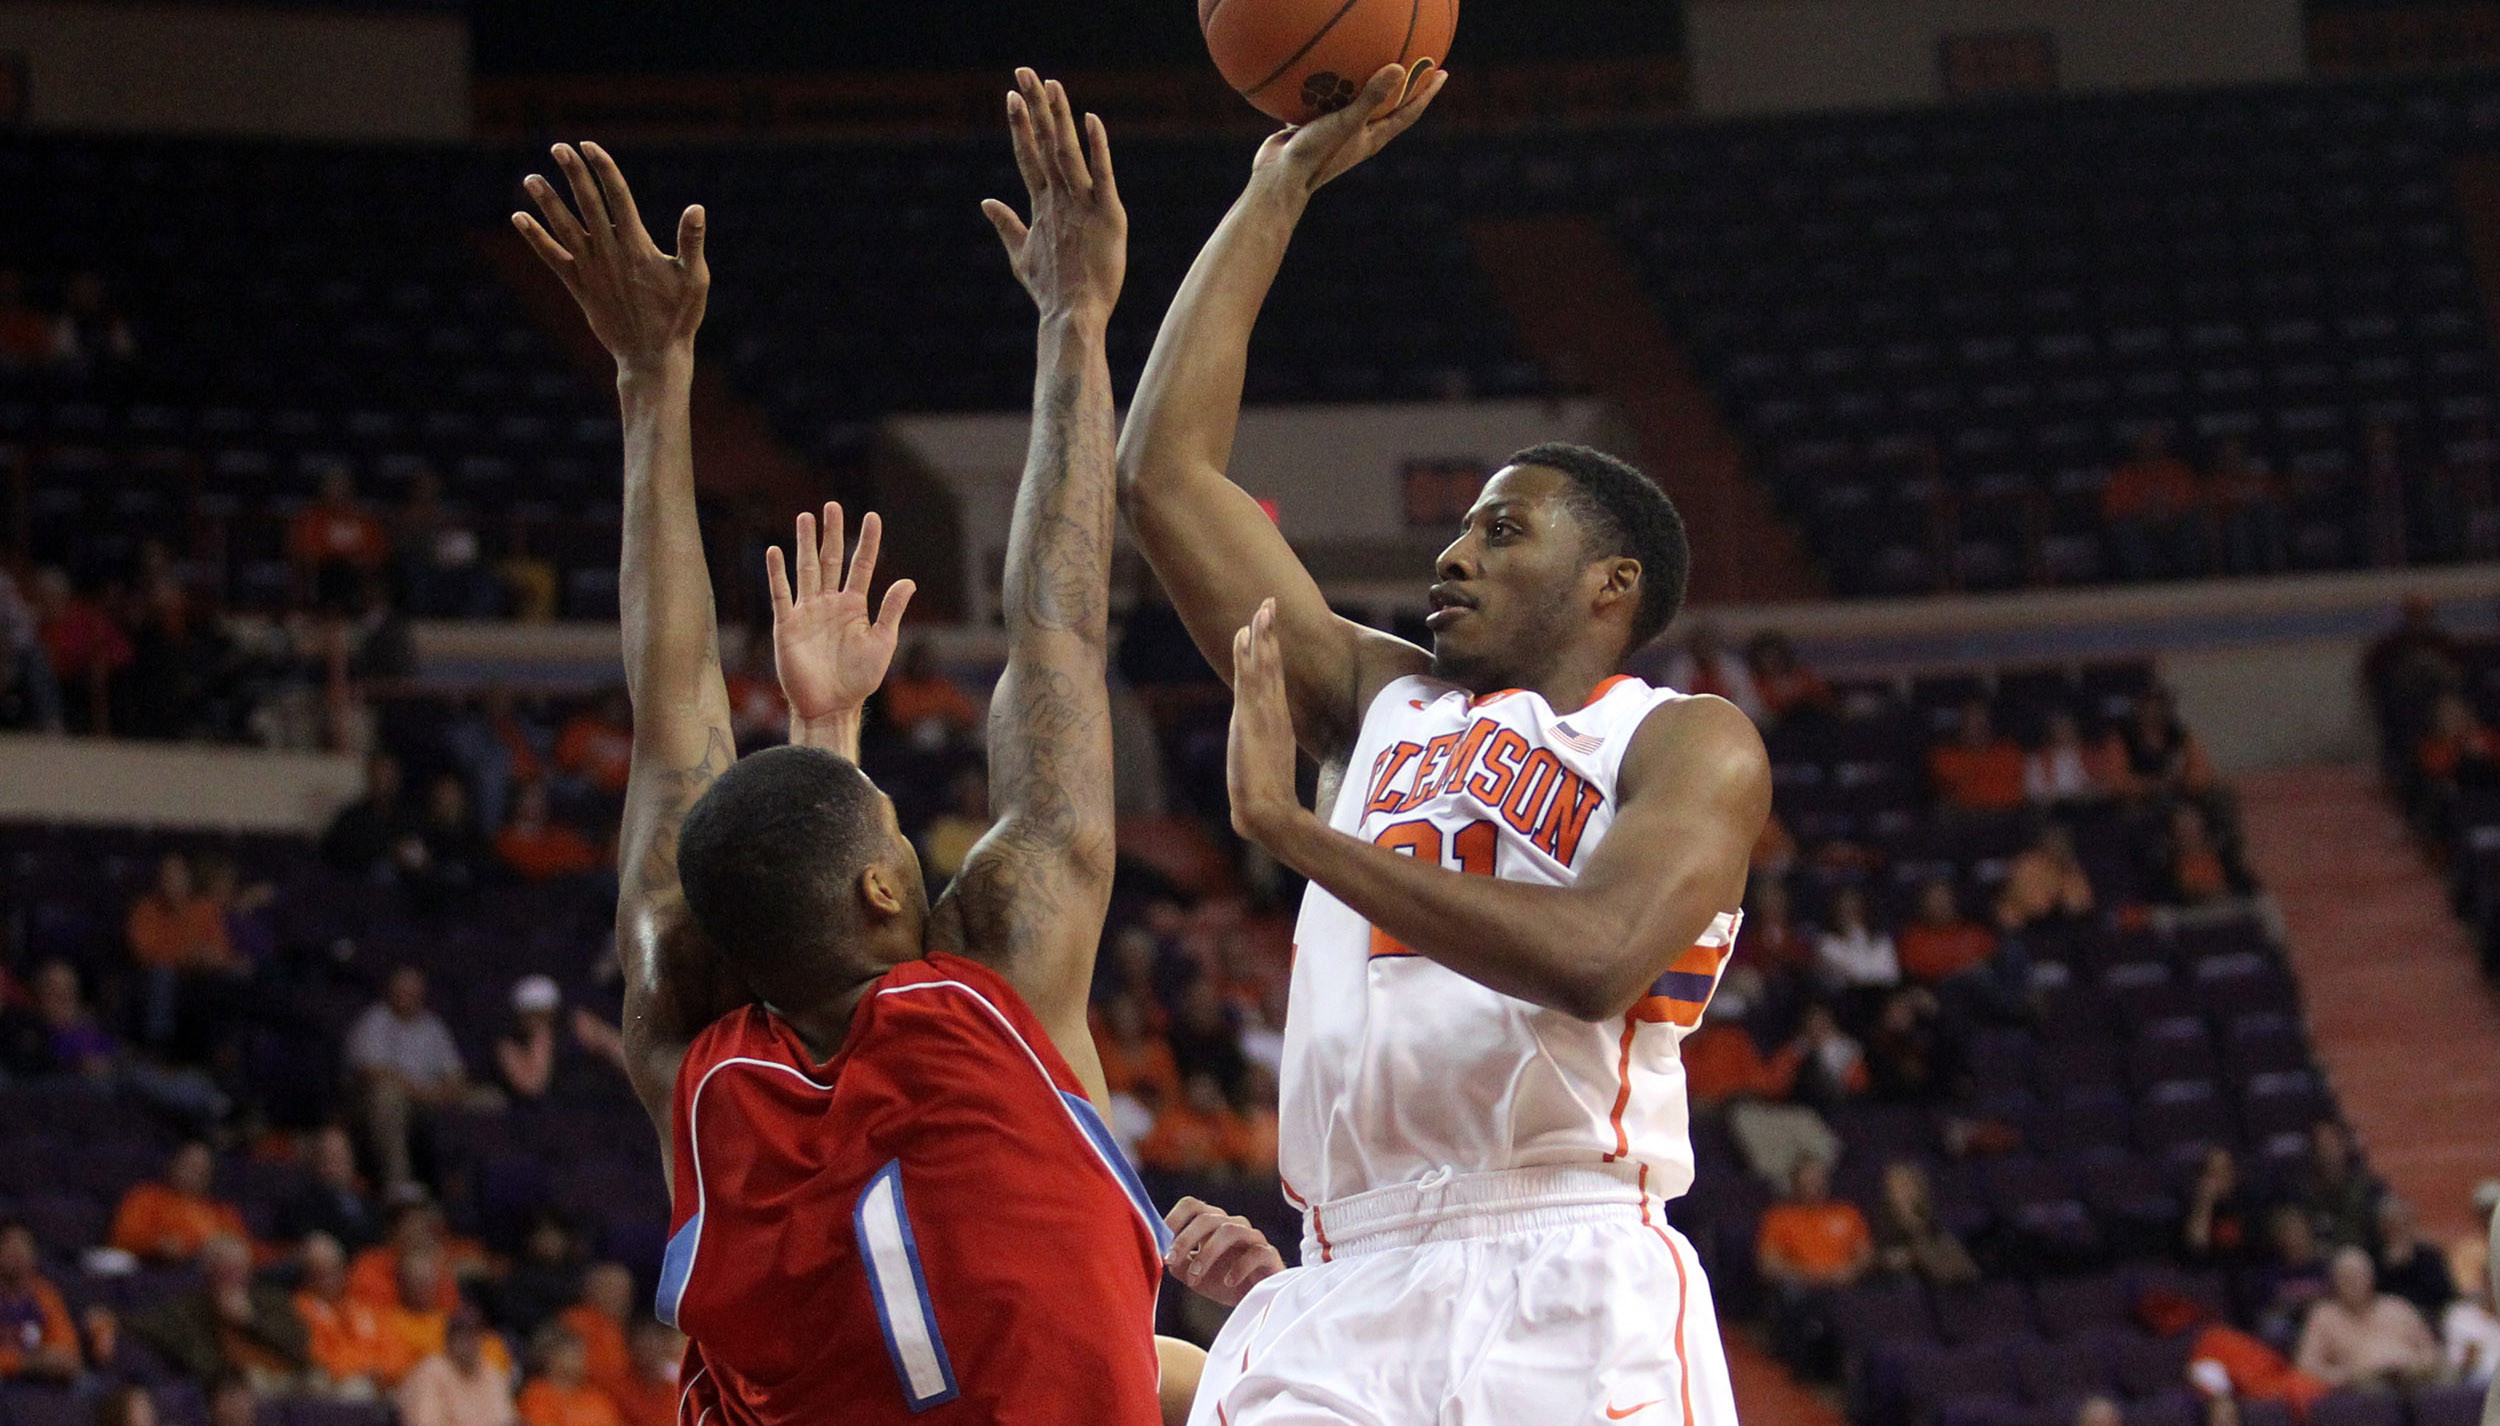 Clemson Defense Strong in 58-37 Victory over Delaware State